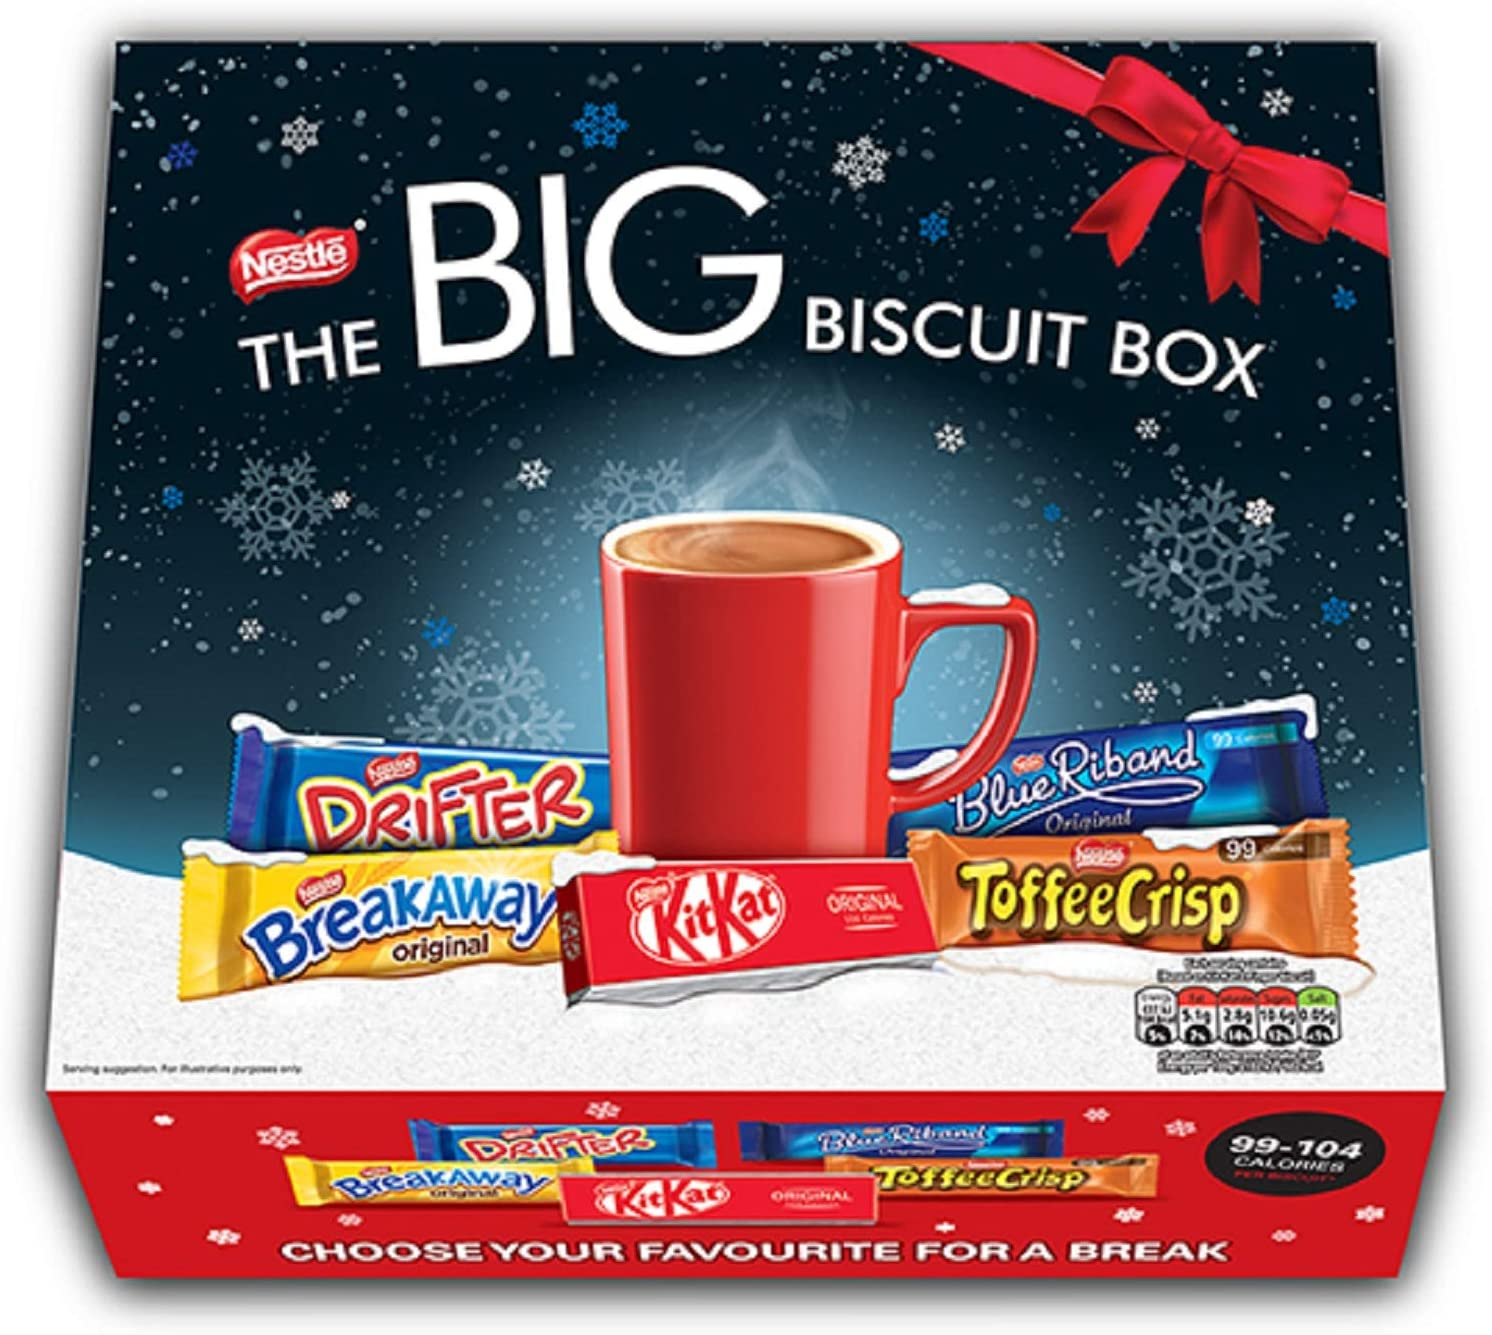 Nestlé Nl47423 The Big Biscuit Box 70 Chocolate Biscuit Bars